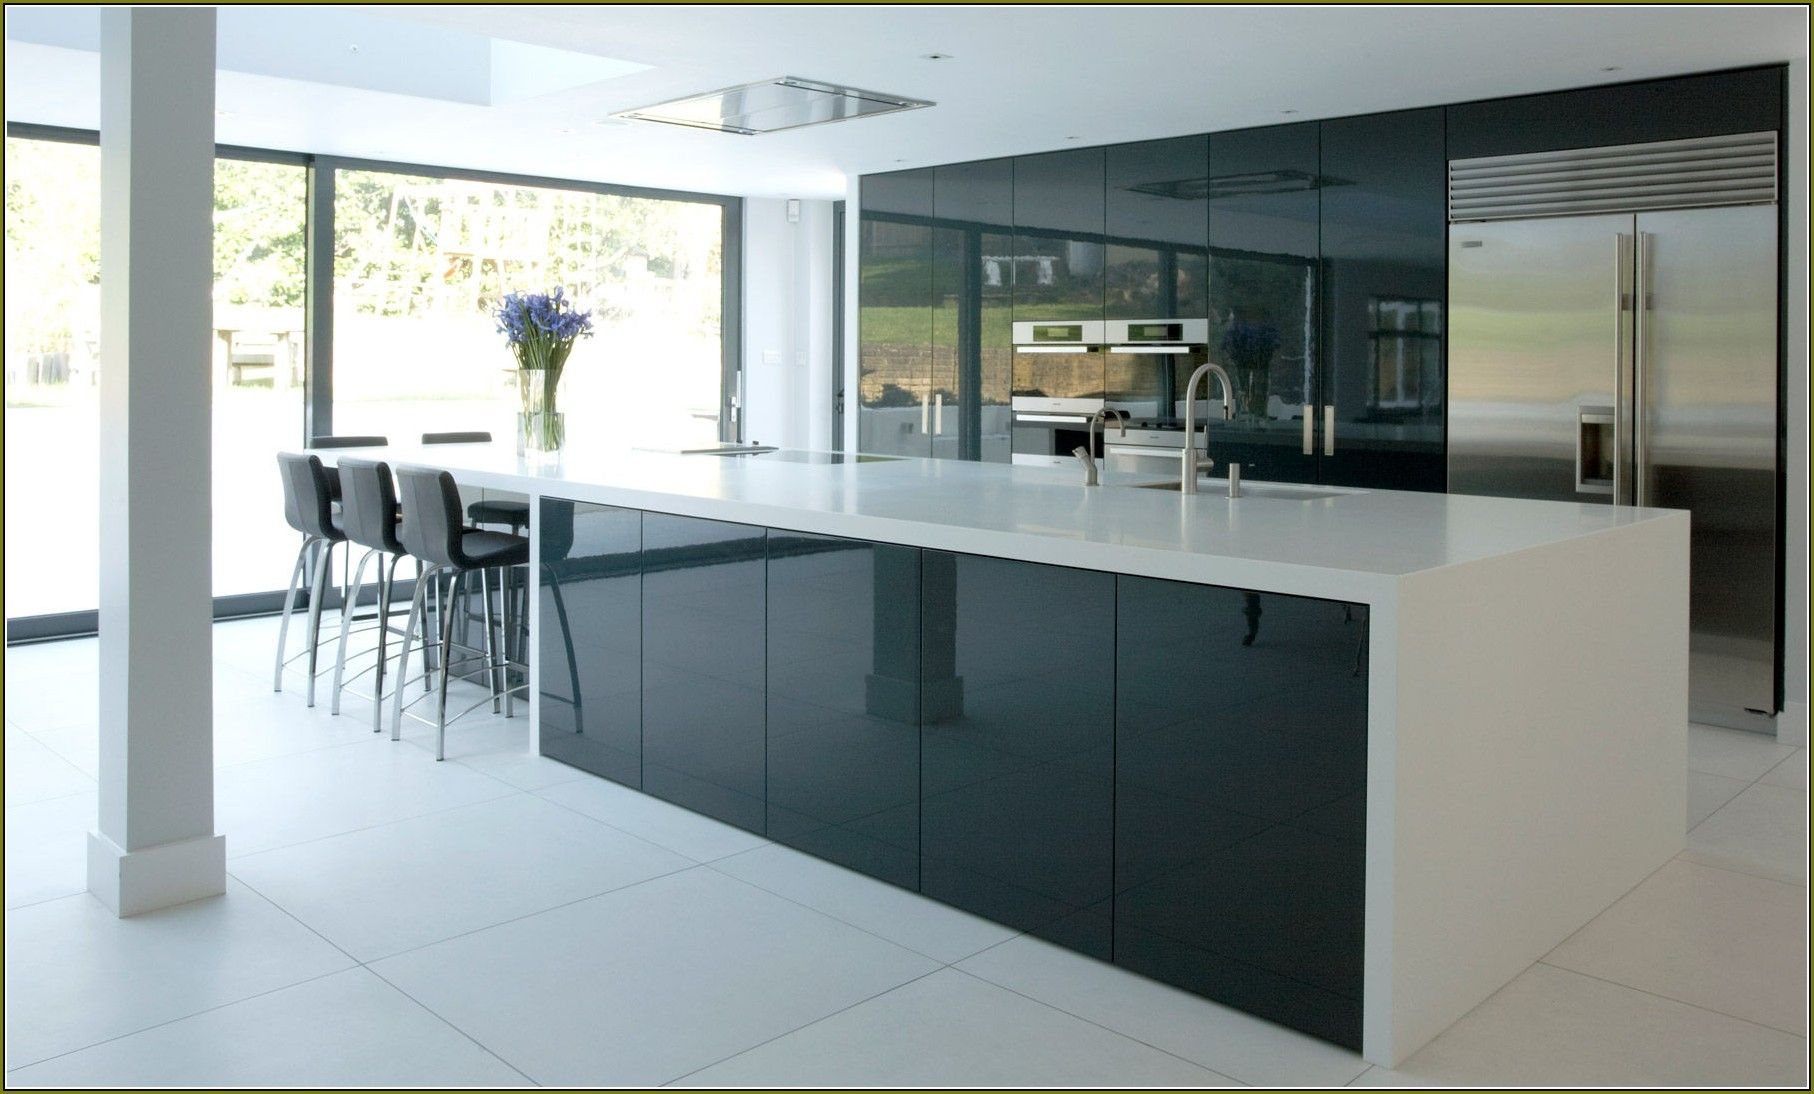 Modest Scheme Of High Gloss Kitchen Doors Ikea Kitchen Cabinet Doors High Gloss Black With